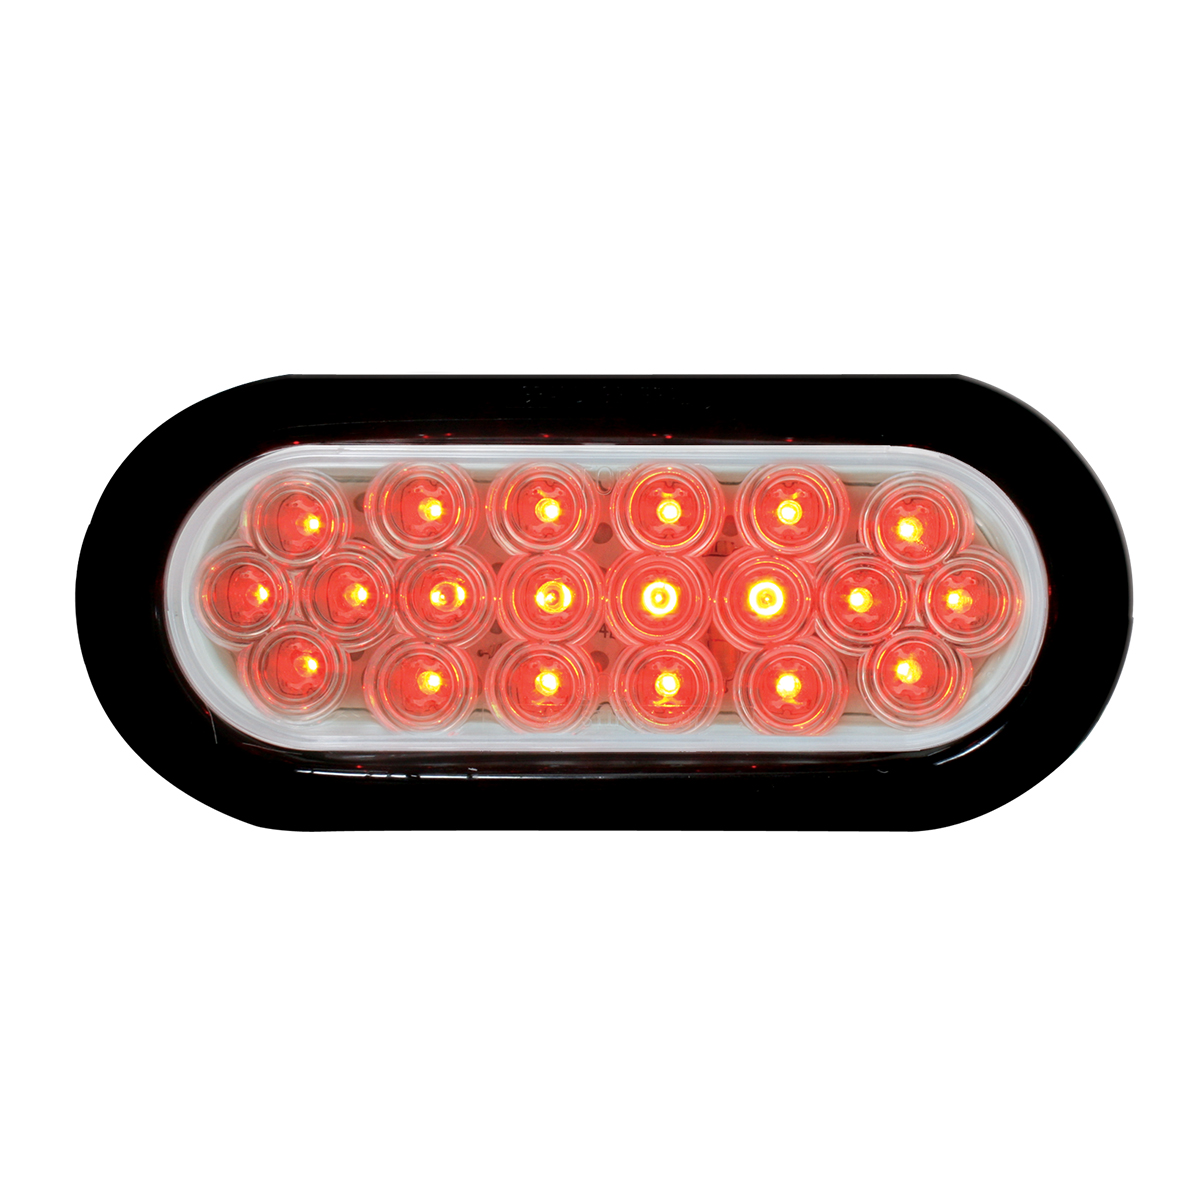 87727 Oval Fleet LED Light w/ Black Rubber Grommet